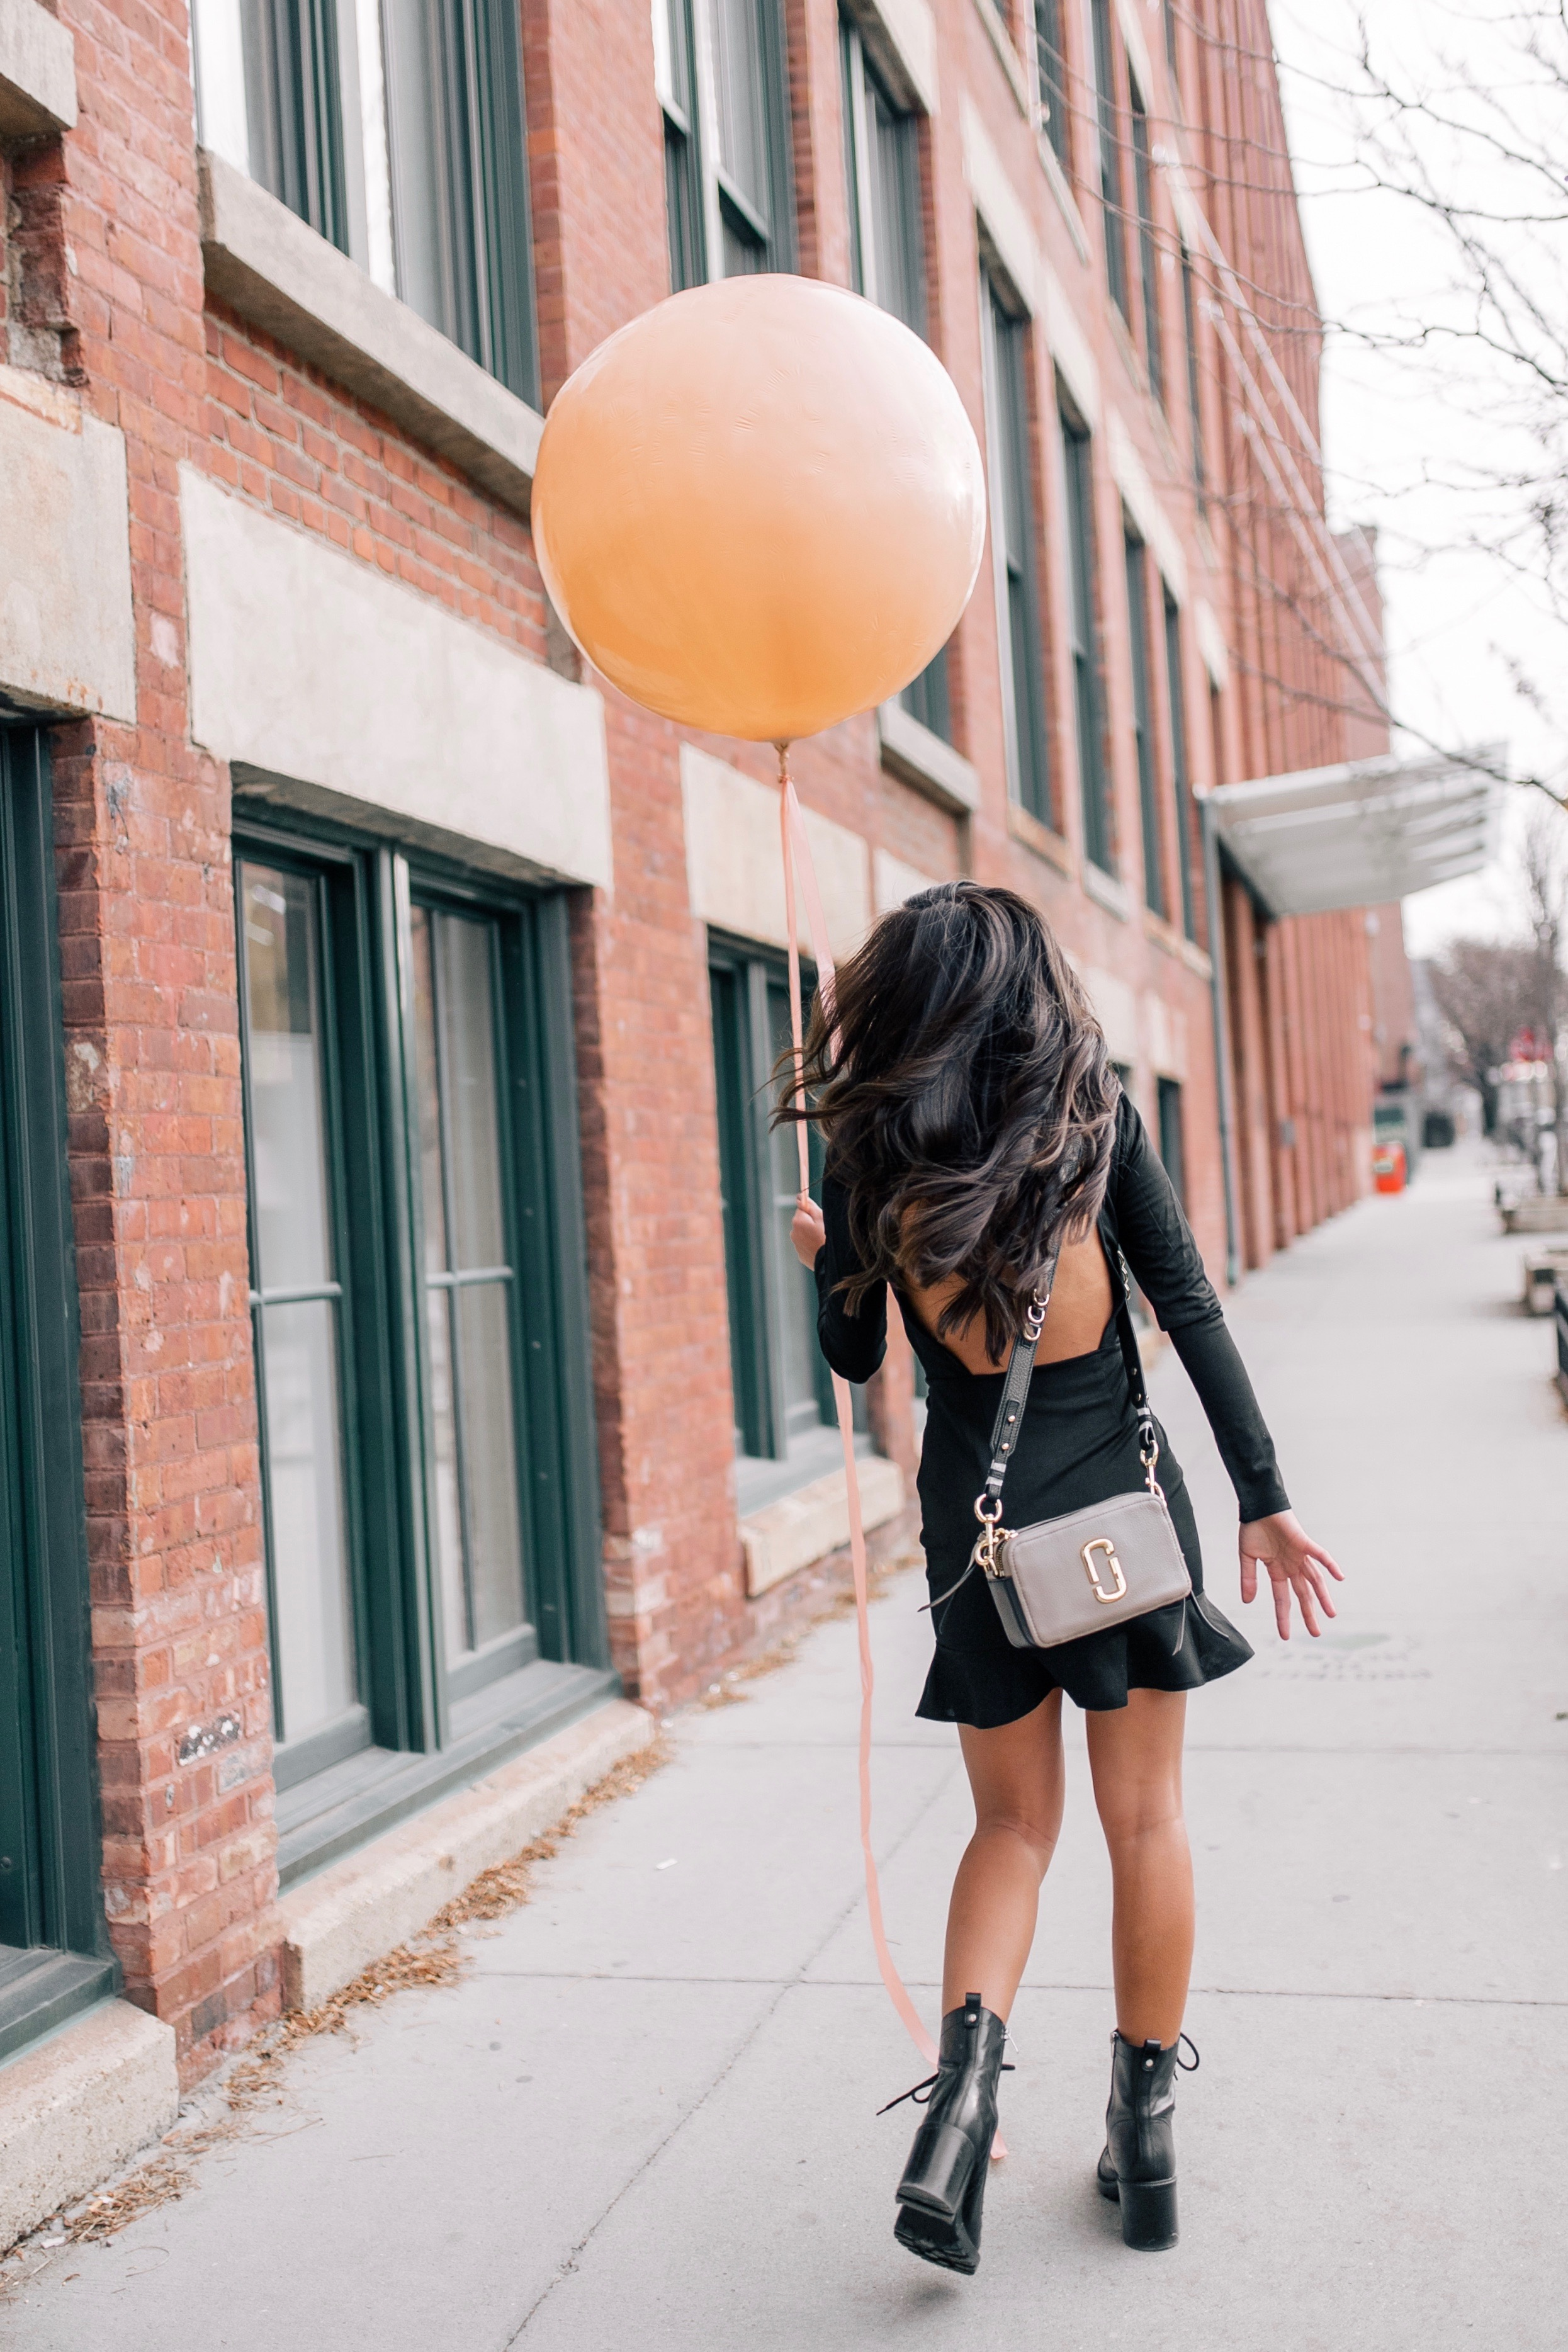 The Bachelor Caila Quinn 27th Birthday Black Dress Boots Outfit Dumbo Brooklyn